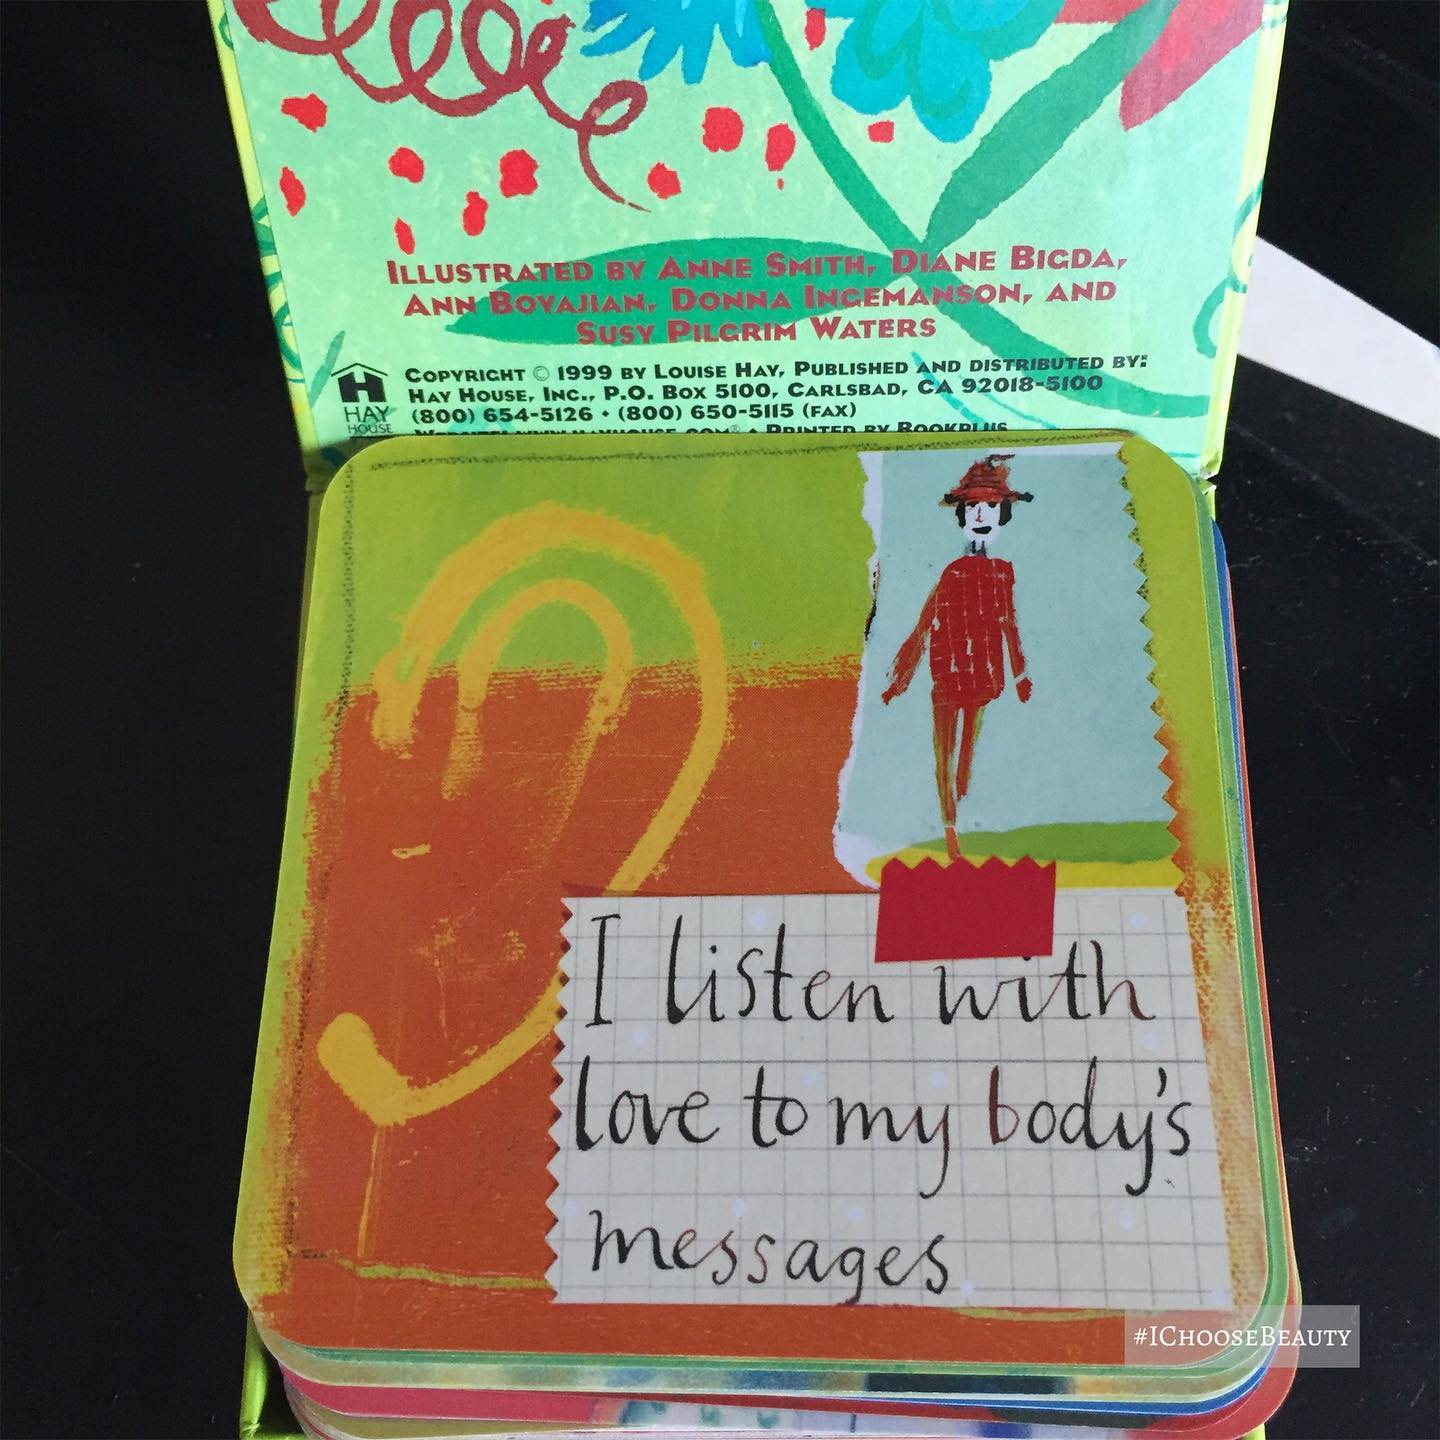 Inspiration from the words and illustrations in these @louise_hay_affirmations Power Thought Cards.  #ichoosebeauty Day 2674